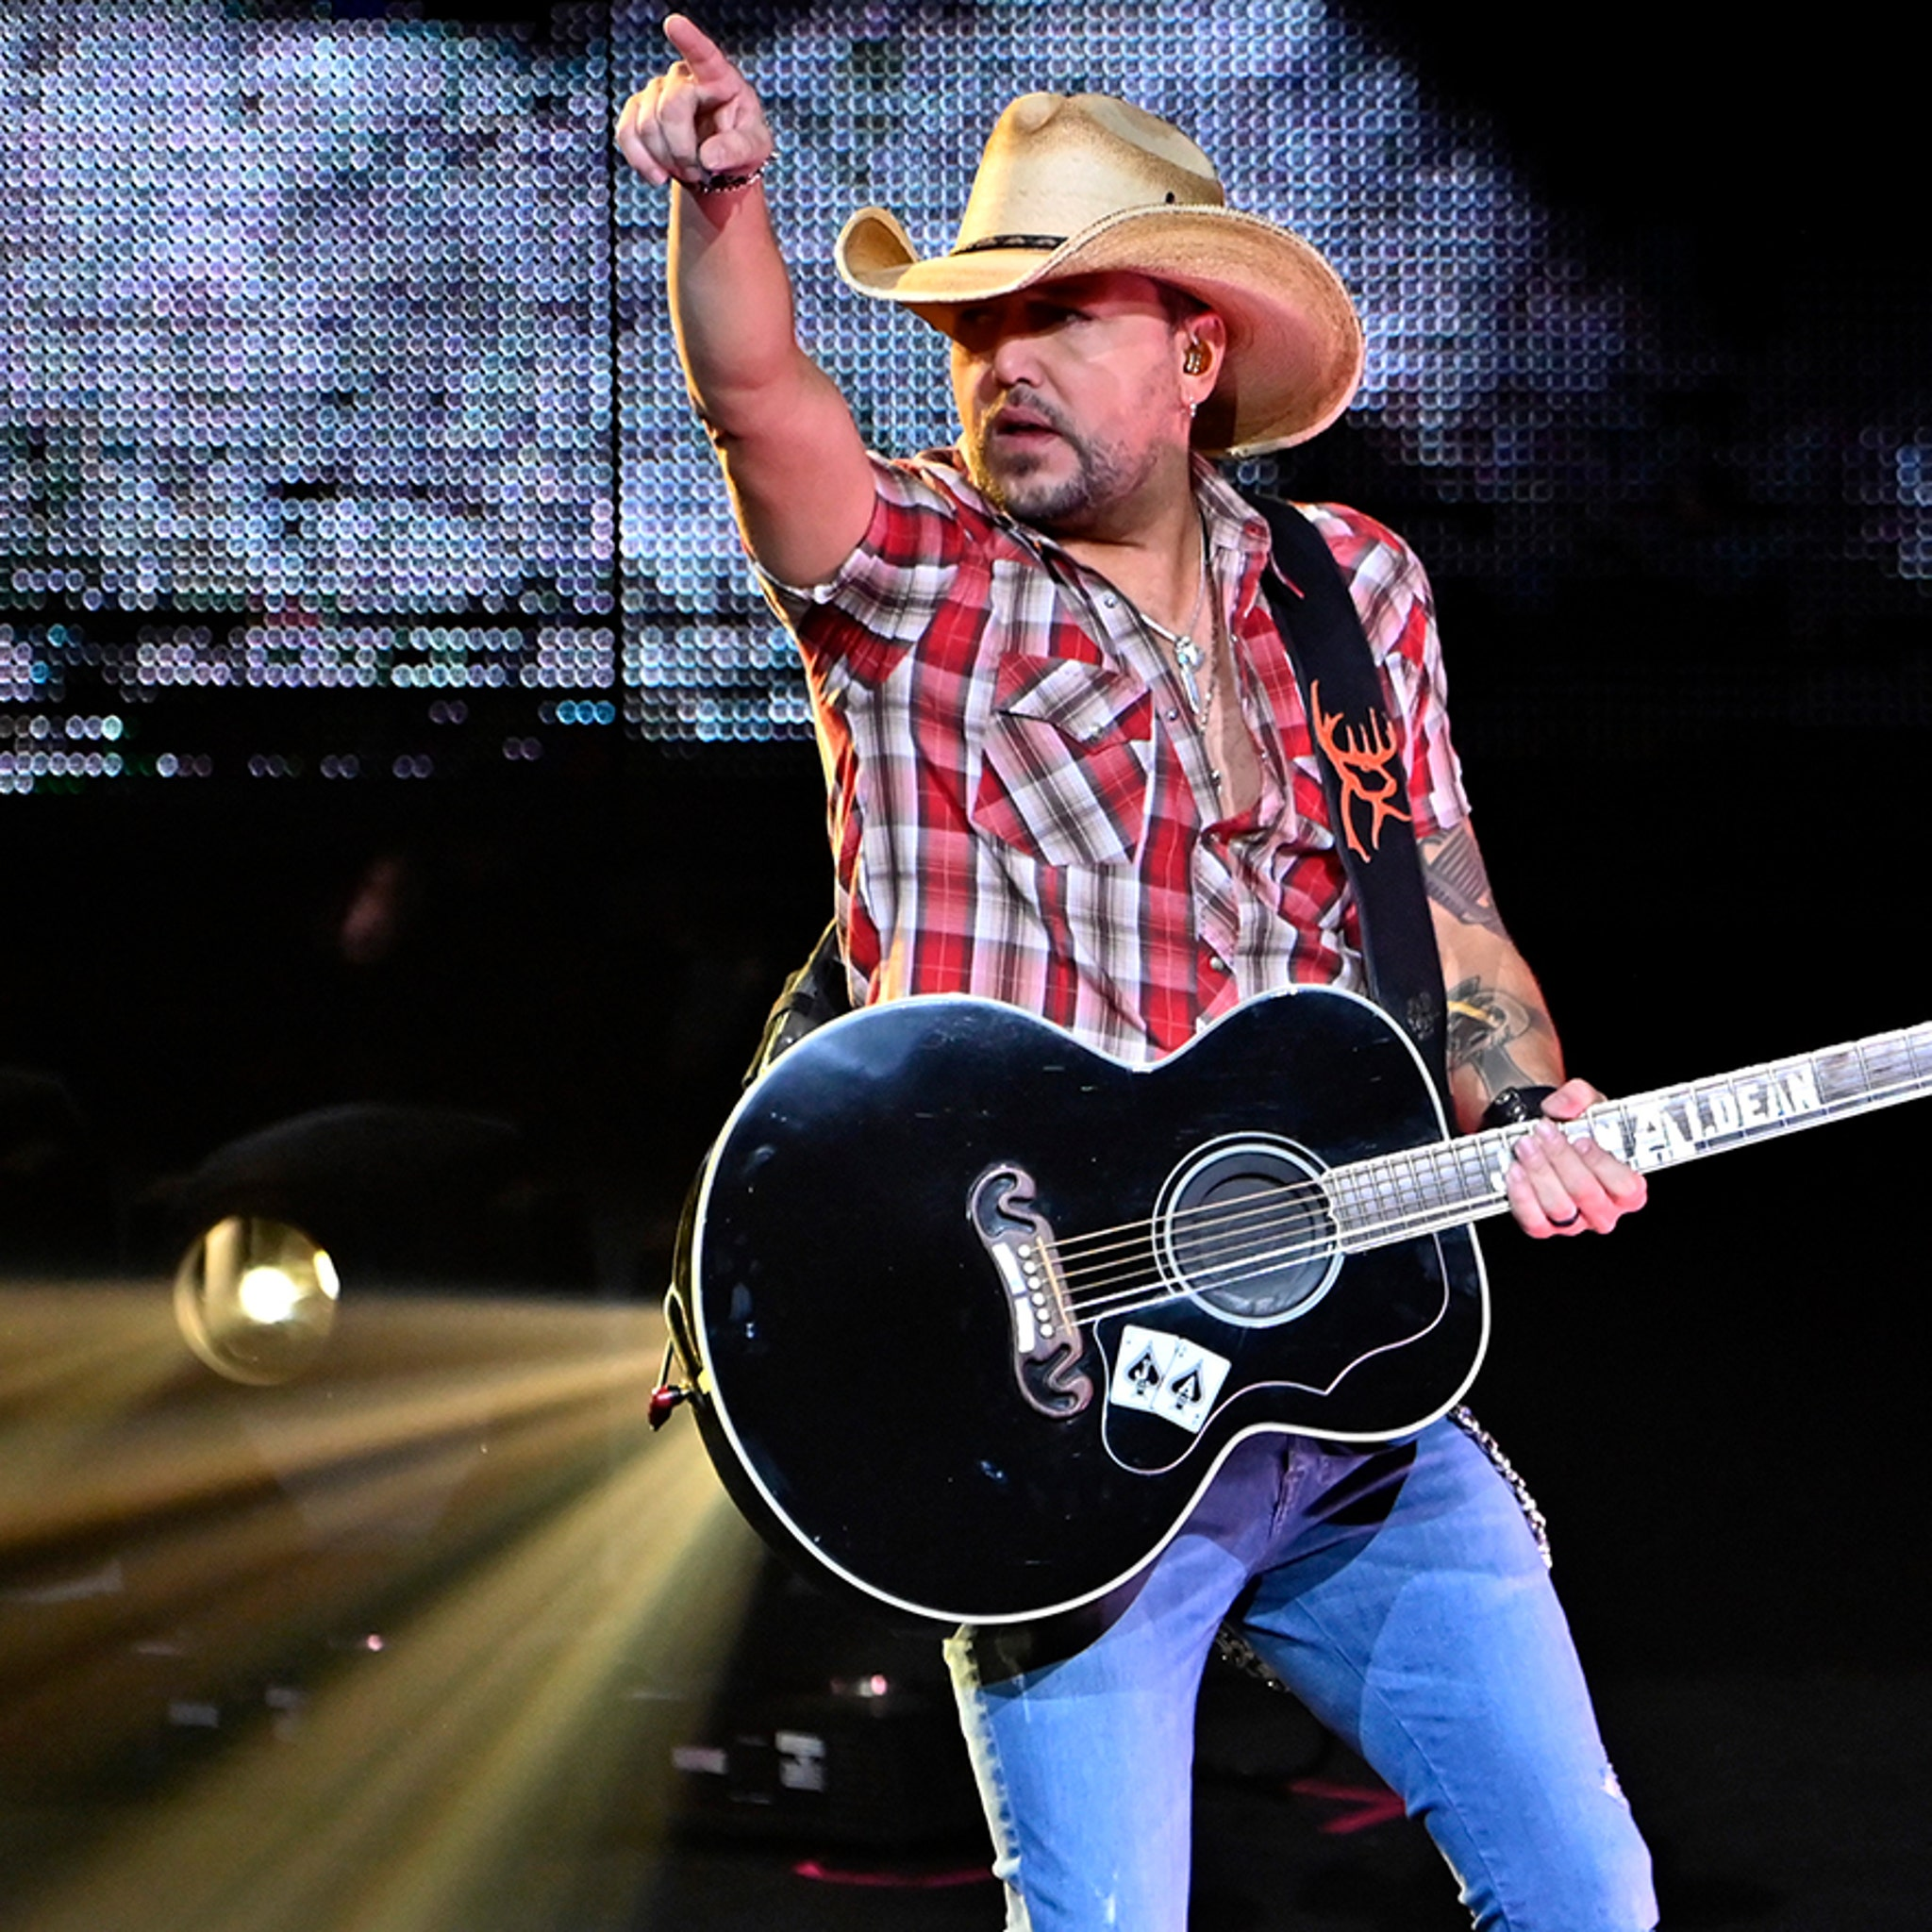 Jason Aldean Returns to Play Vegas, First Time Since 2017 Shooting